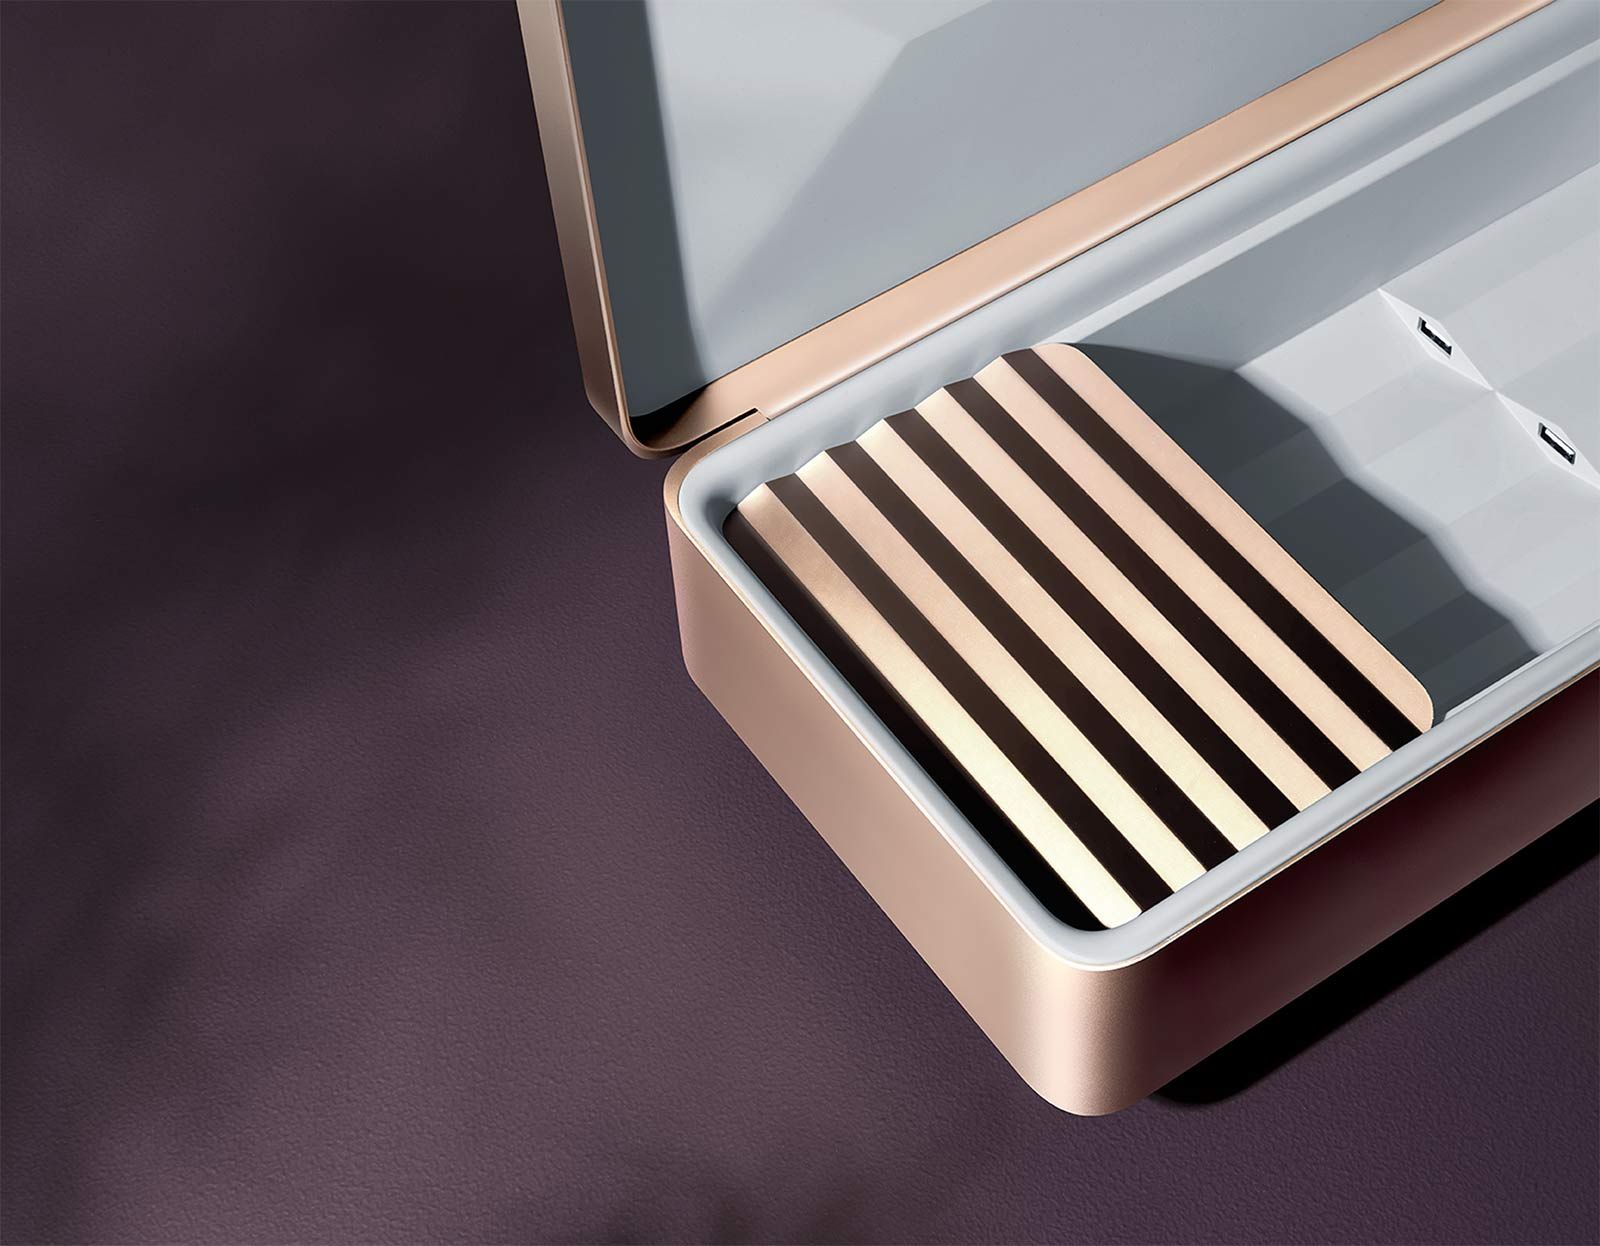 The TROVA GO Personalizes Biometric Security Wherever You Are